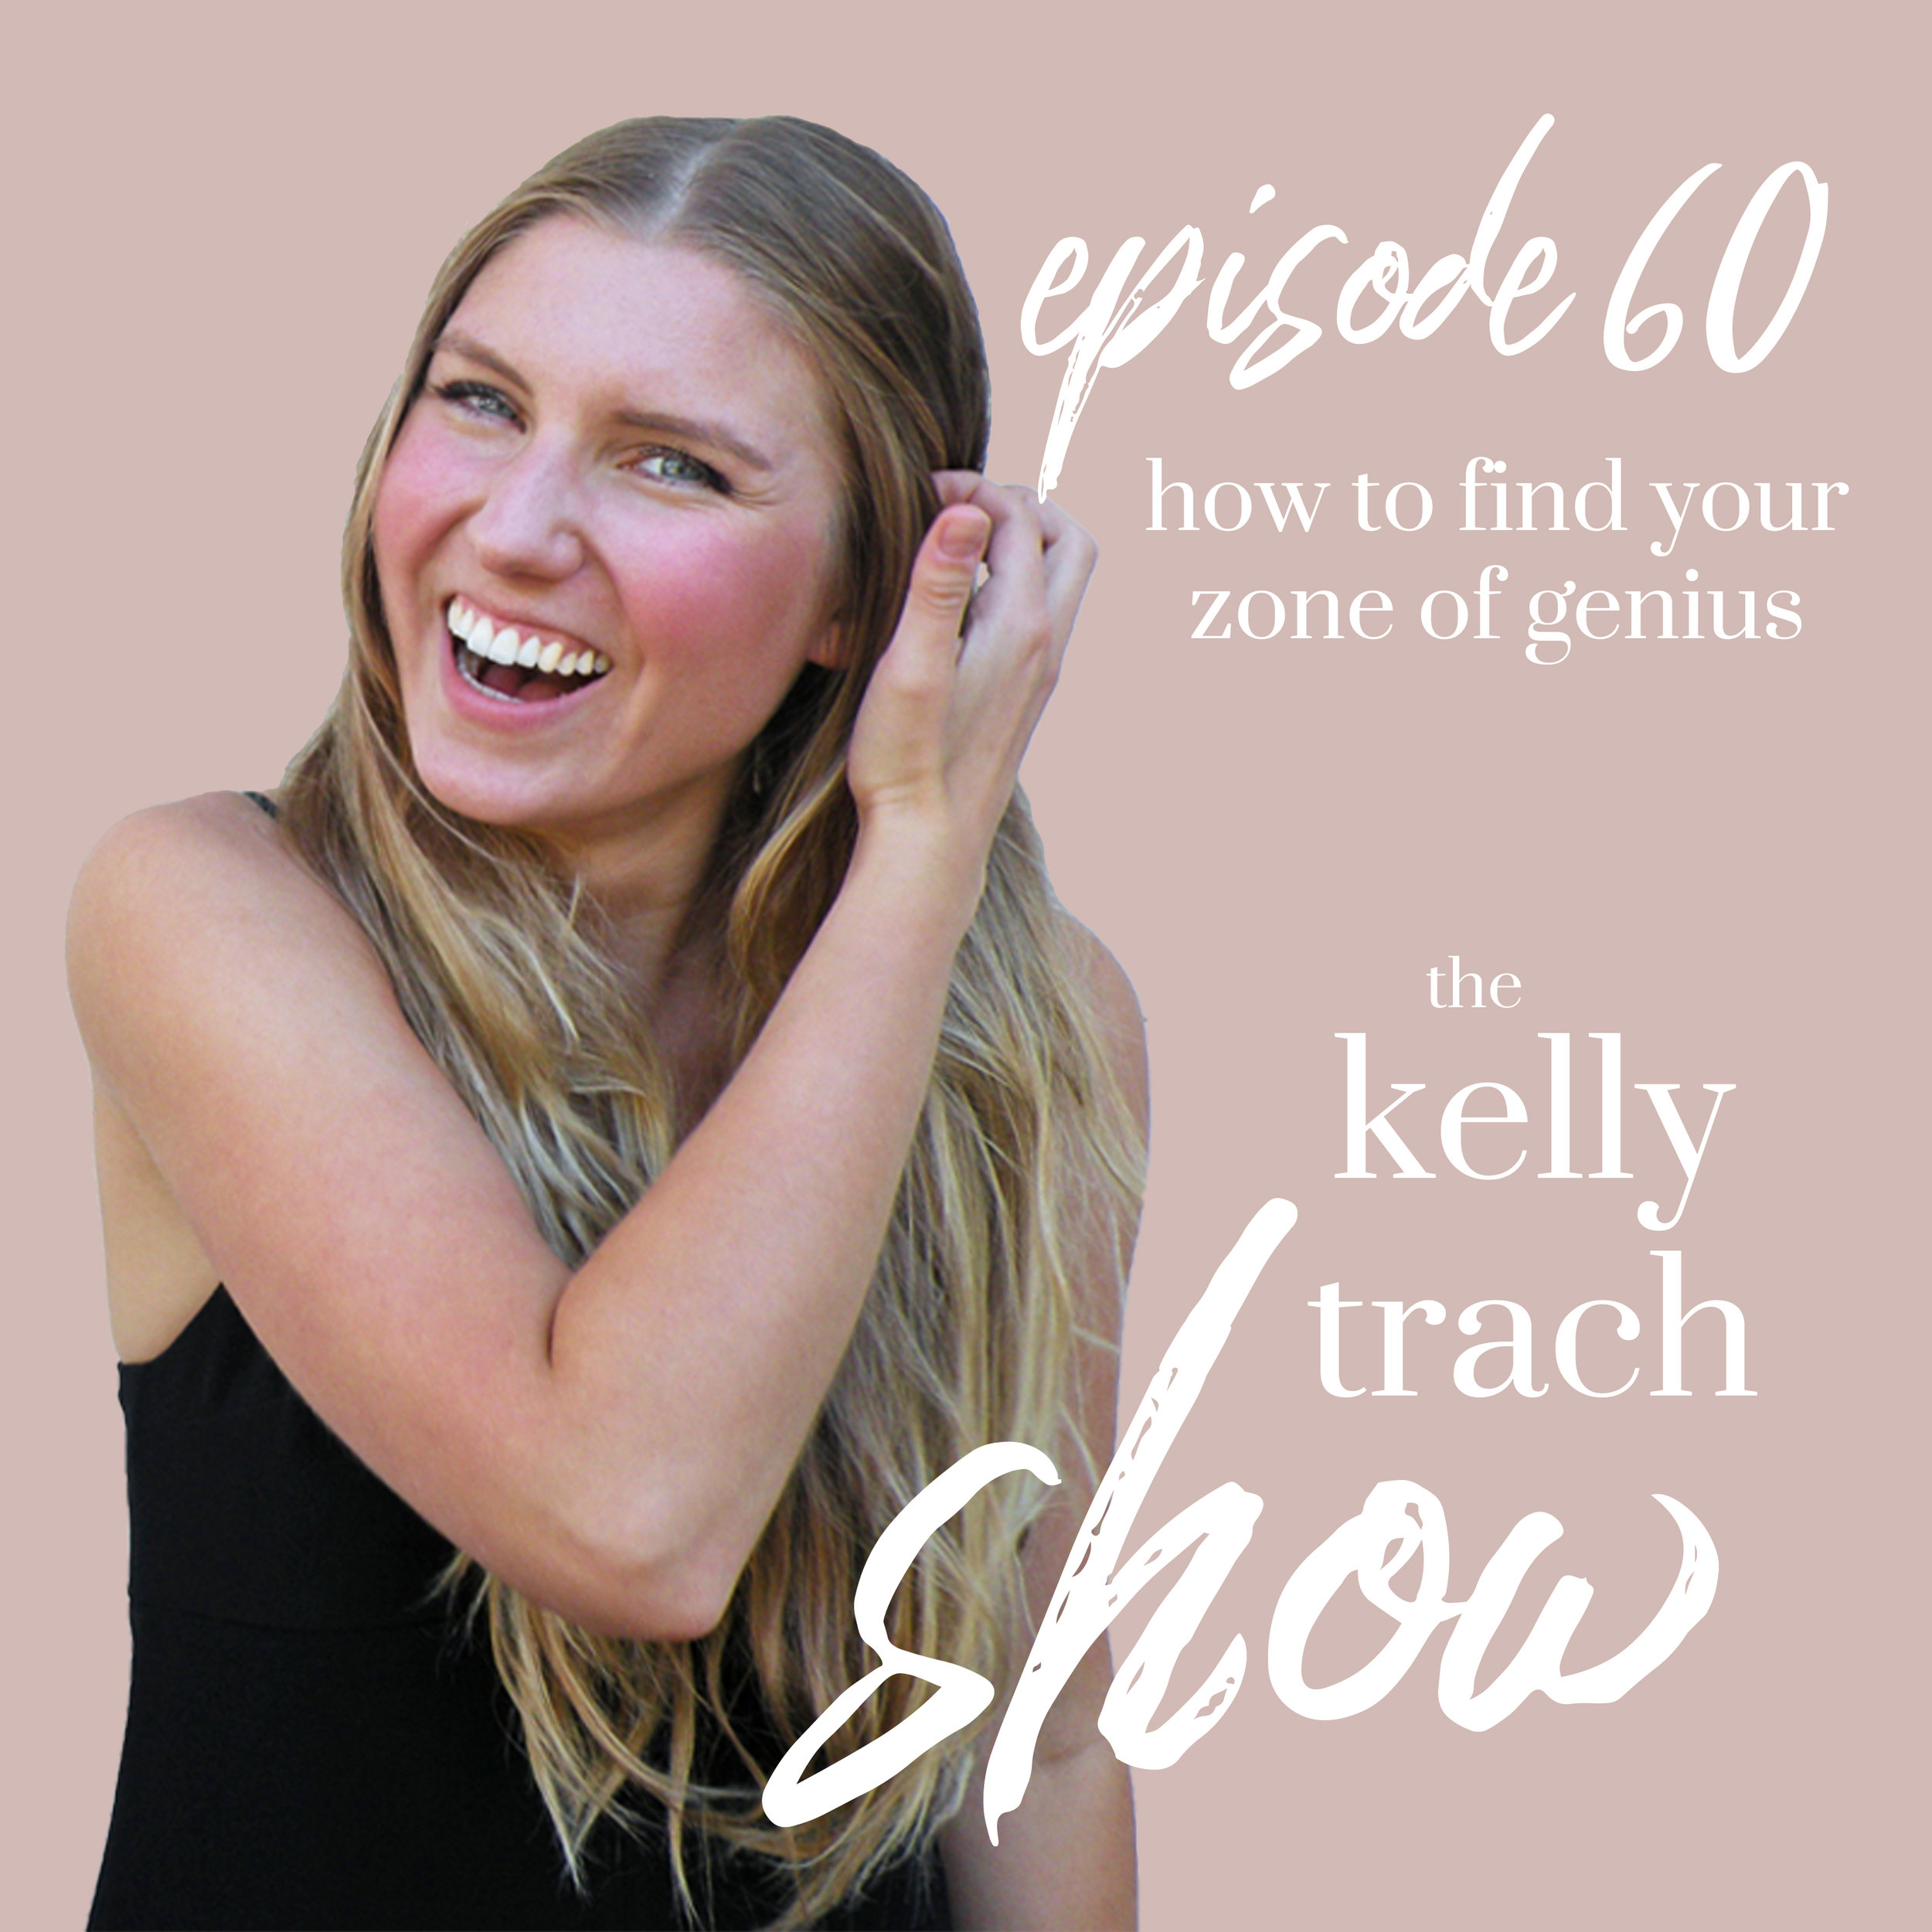 60 - How to Find Your Zone of Genius - The Kelly Trach Show Podcast.jpg